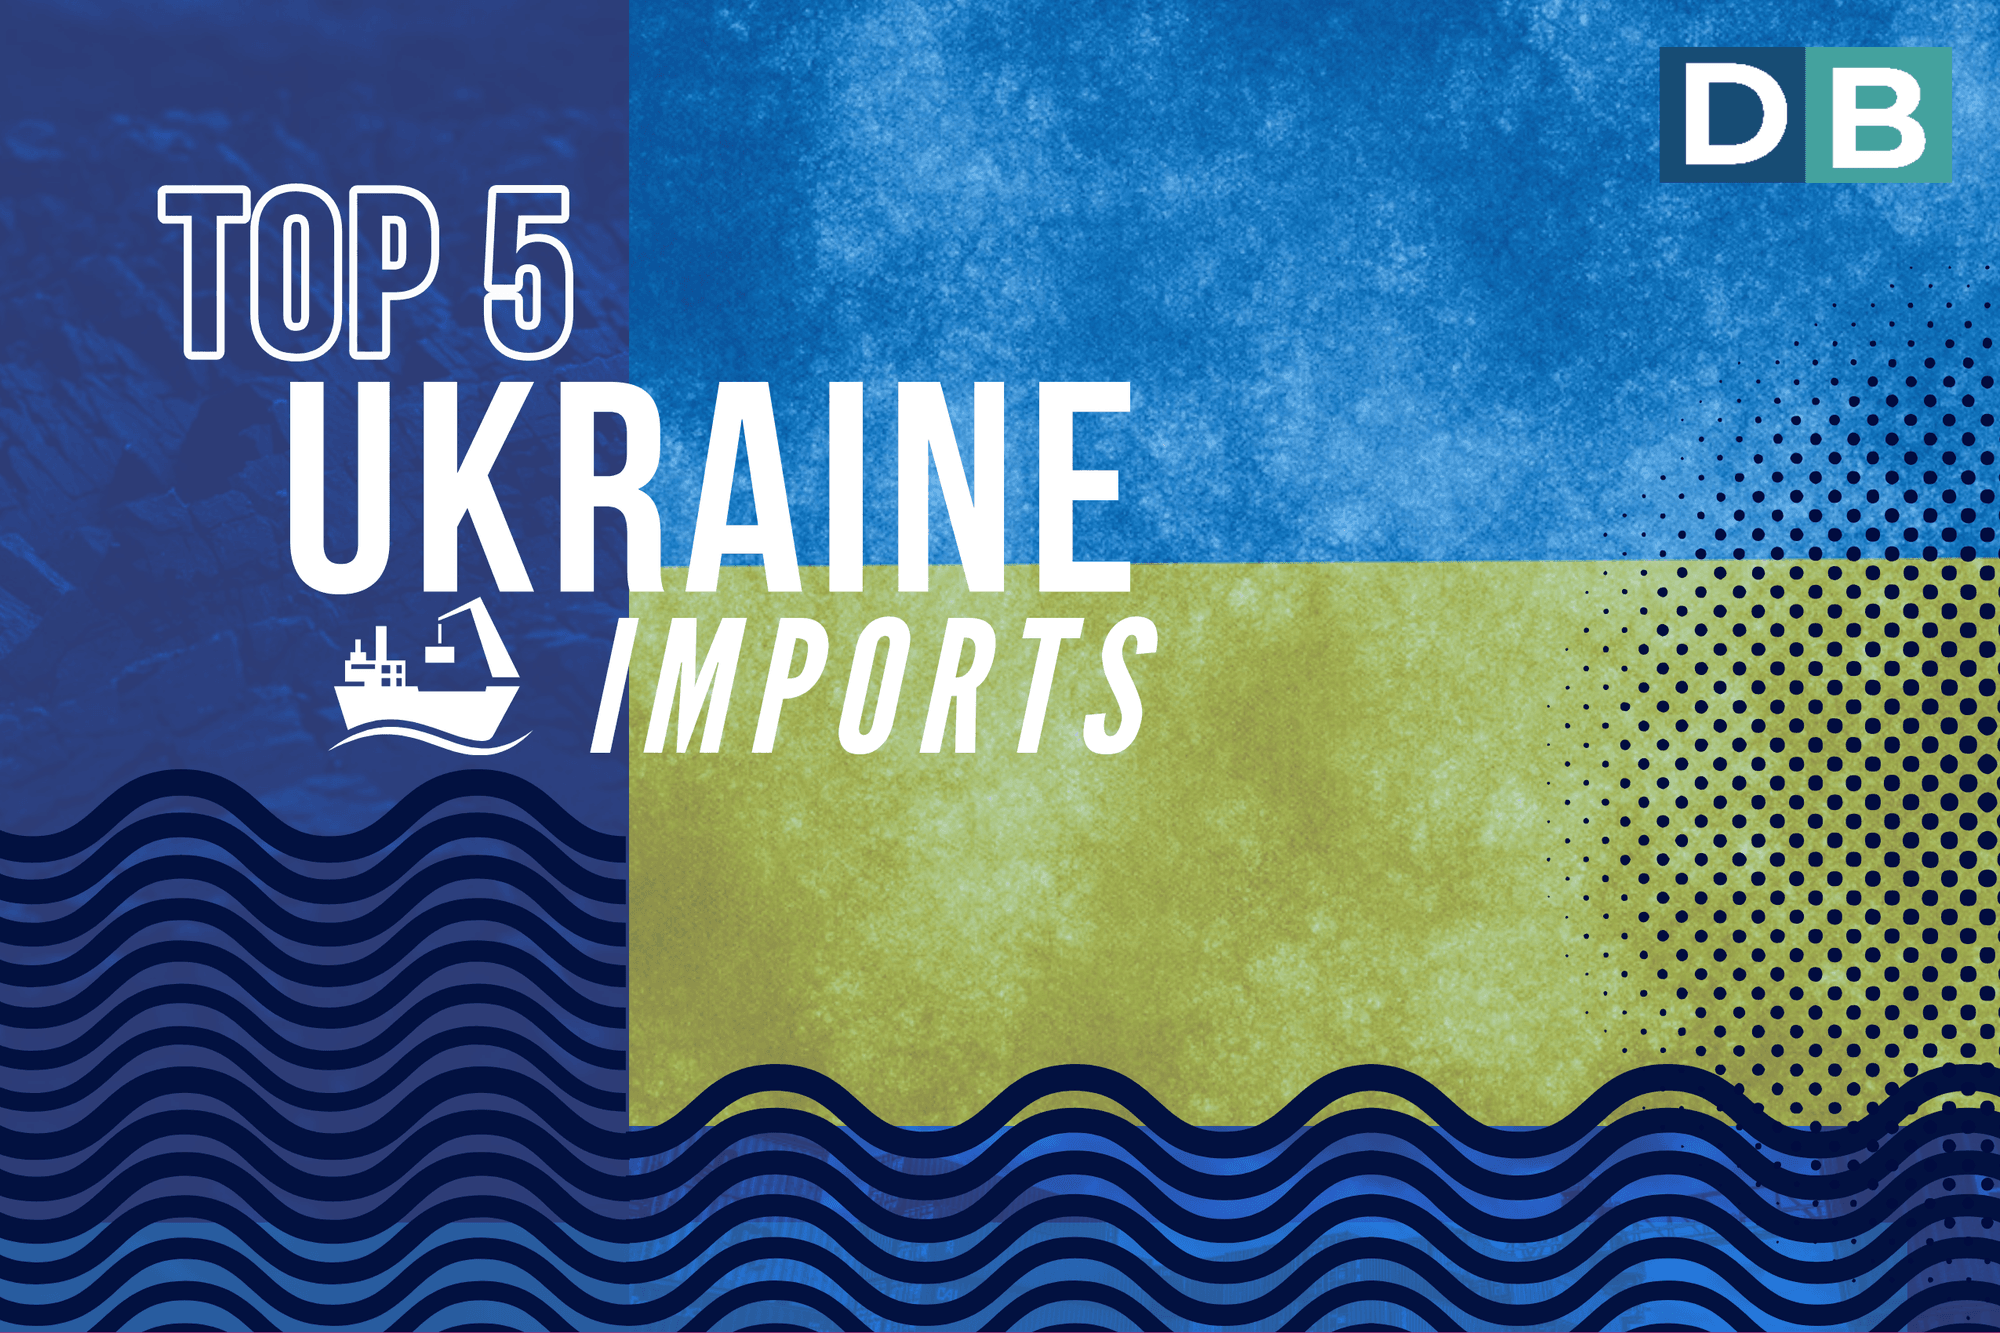 Top 5 imports Ukraine year 2018!